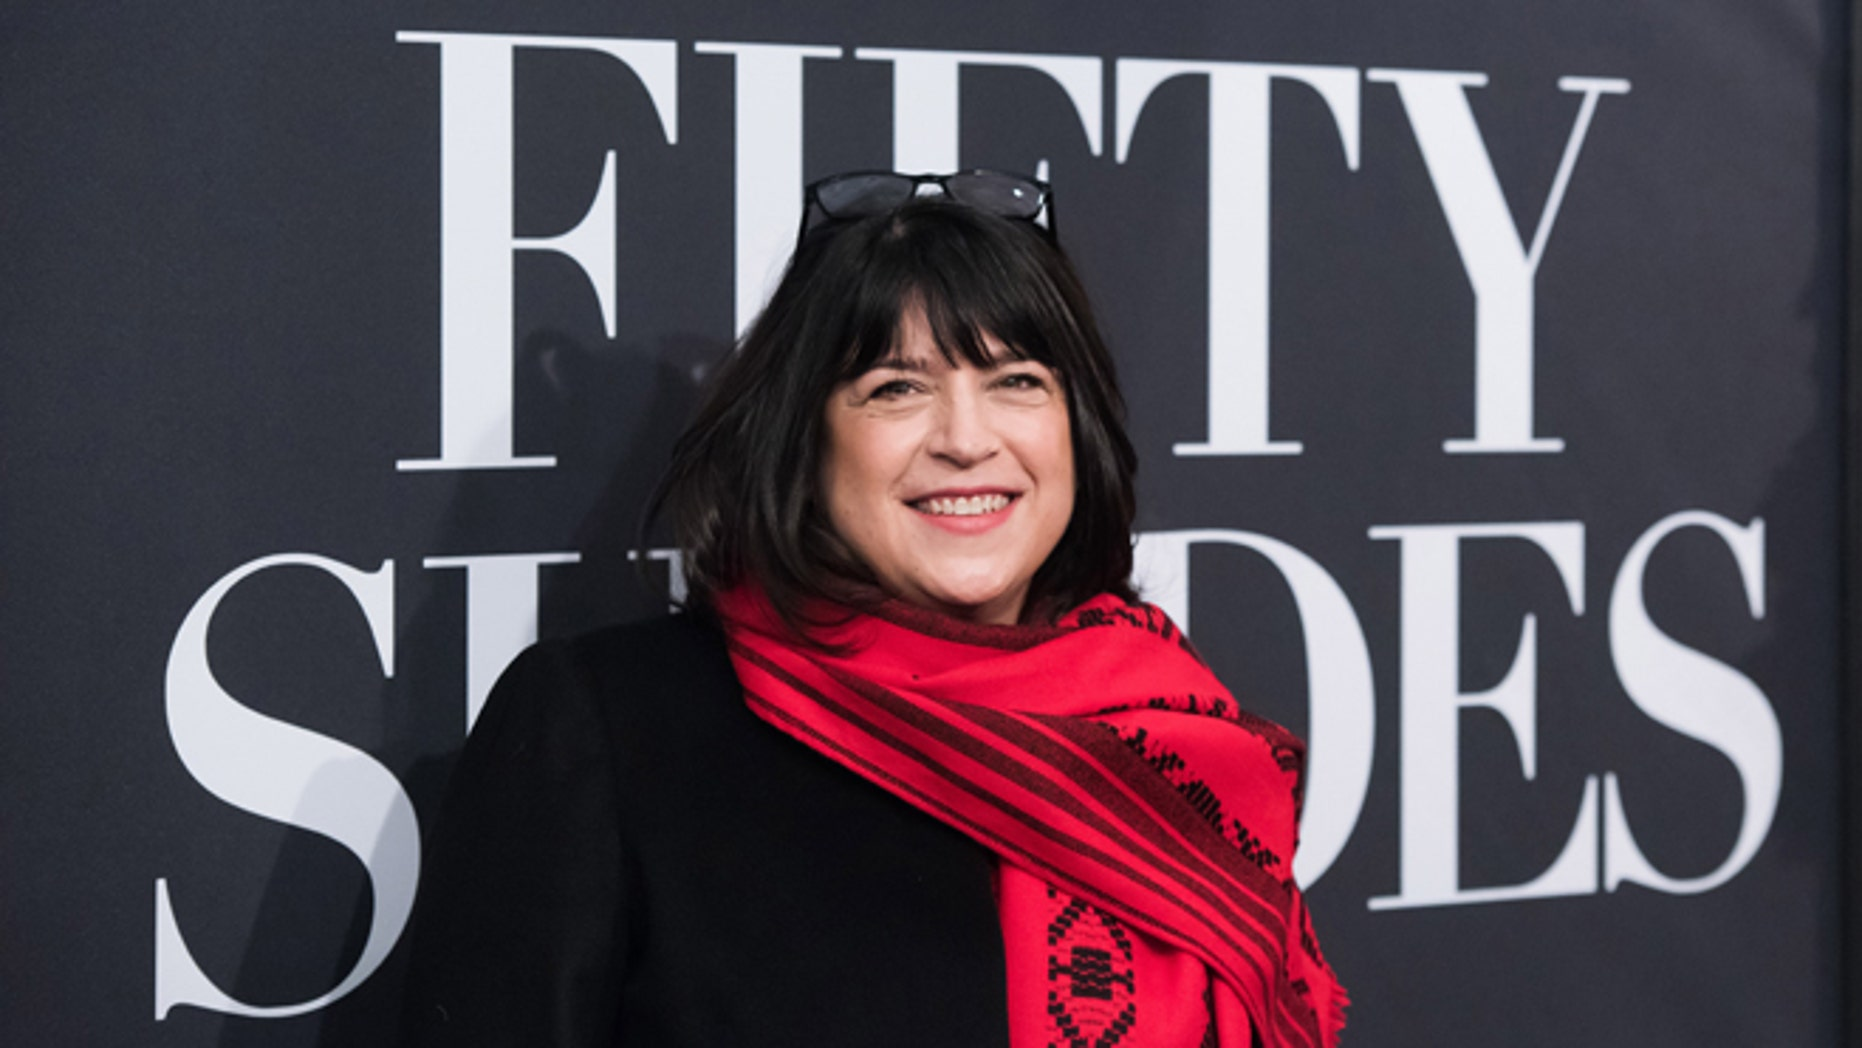 """FILE - In this Feb. 6, 2015 file photo, author EL James attends a special fan screening of """"Fifty Shades of Grey"""" in New York. James, who was also a producer on the film, says shepushed hard on creative decisions to make sure her readers would be happy with the final product. (Photo by Charles Sykes/Invision/AP, File)"""